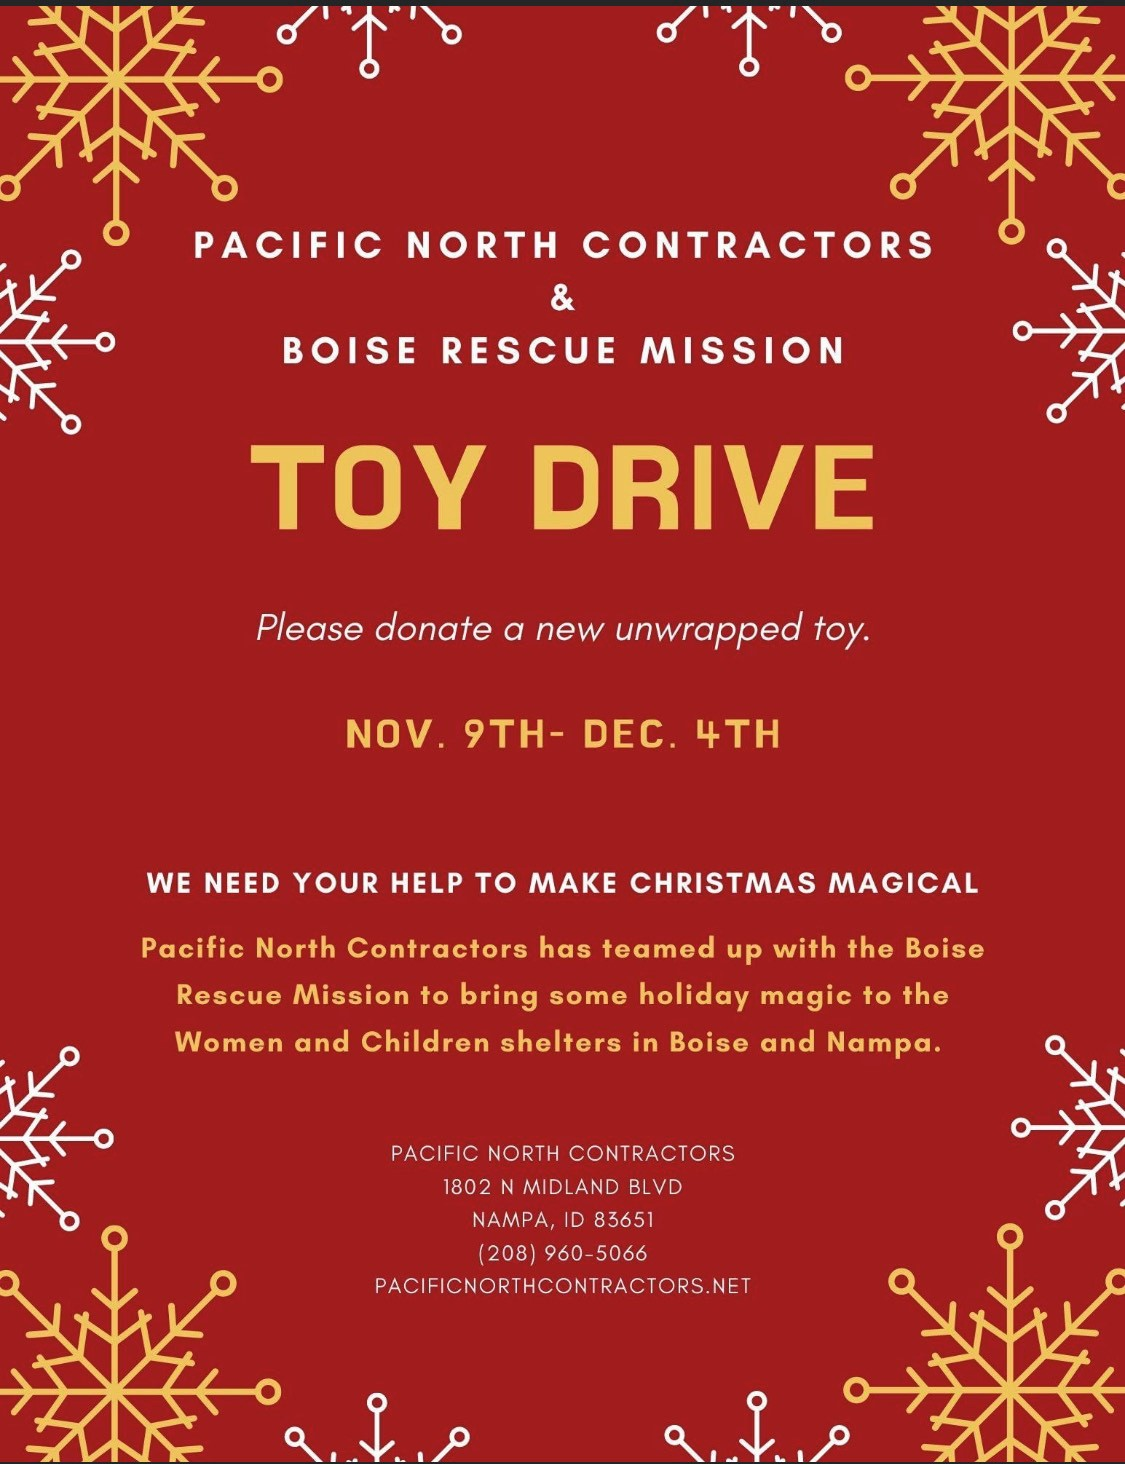 PNC and Boise Rescue Mission Toy drive